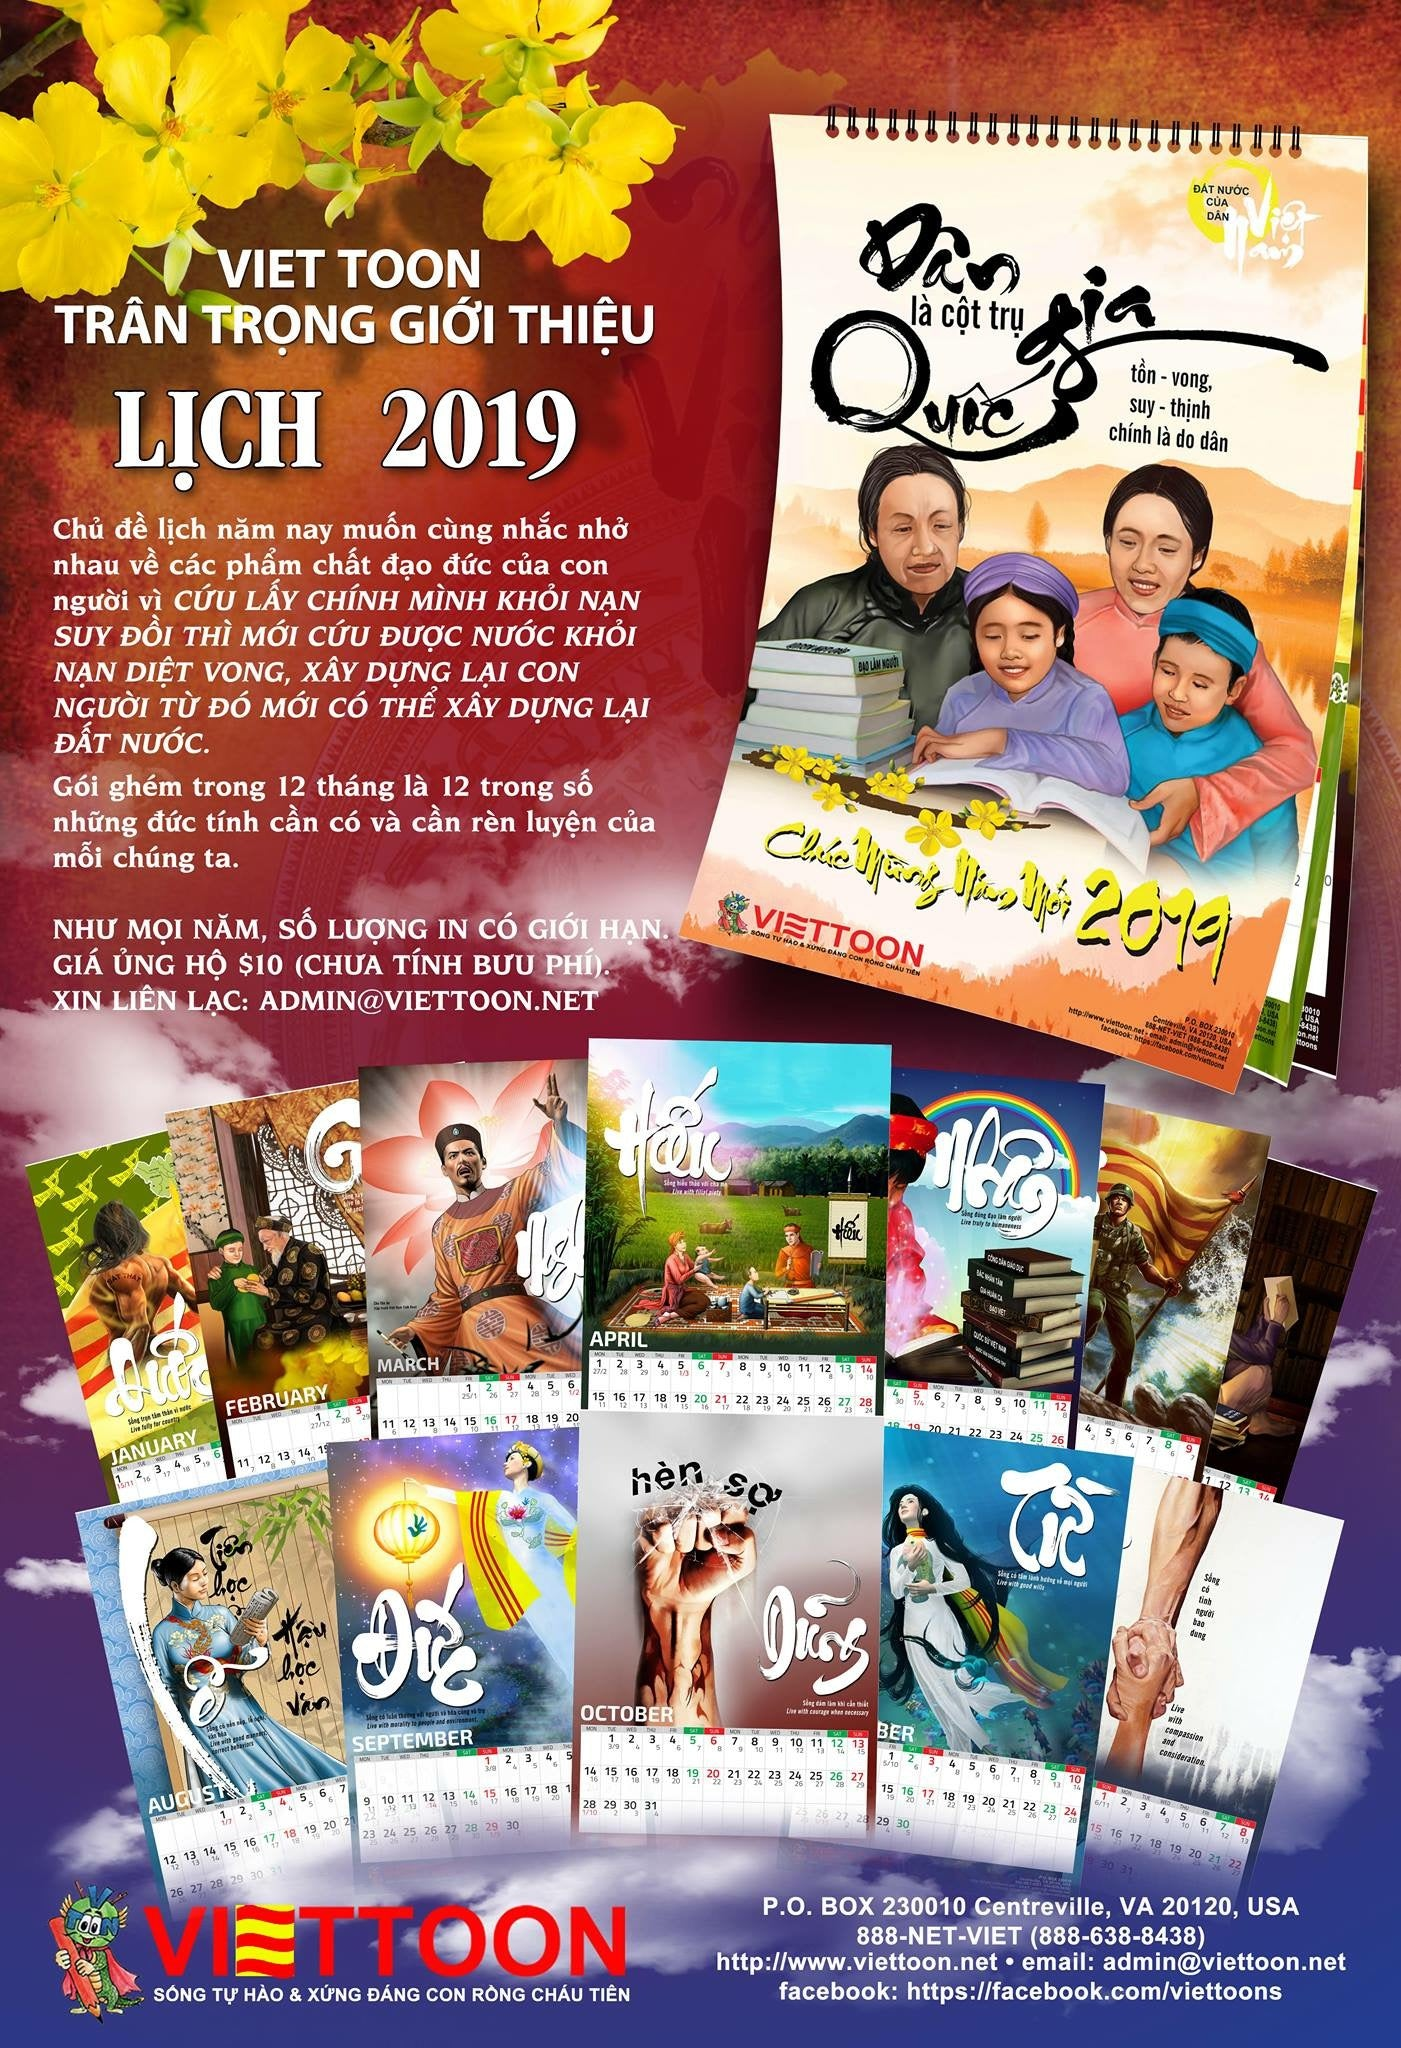 Lịch Viet Toon 2019